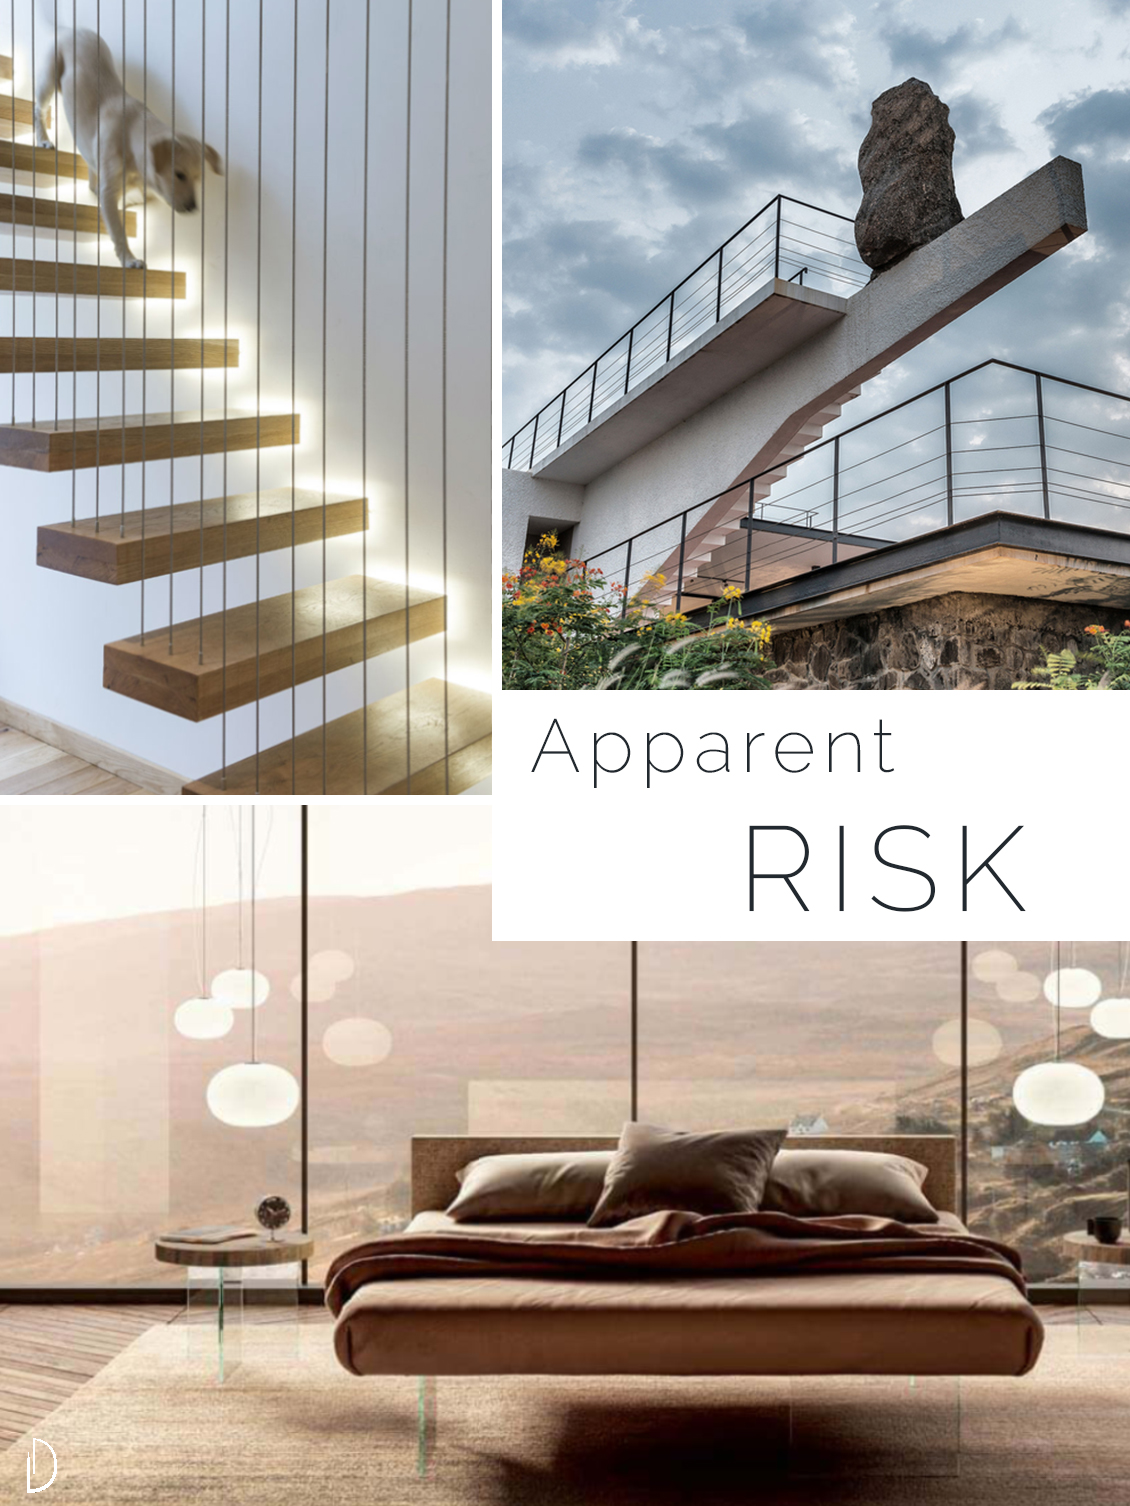 Moodboard showing the concept of risk in biophilic design. 1 A floating staircase 2 A seemingly unstable stone on top of a cantilevered pillar 3 A bed with glass legs.